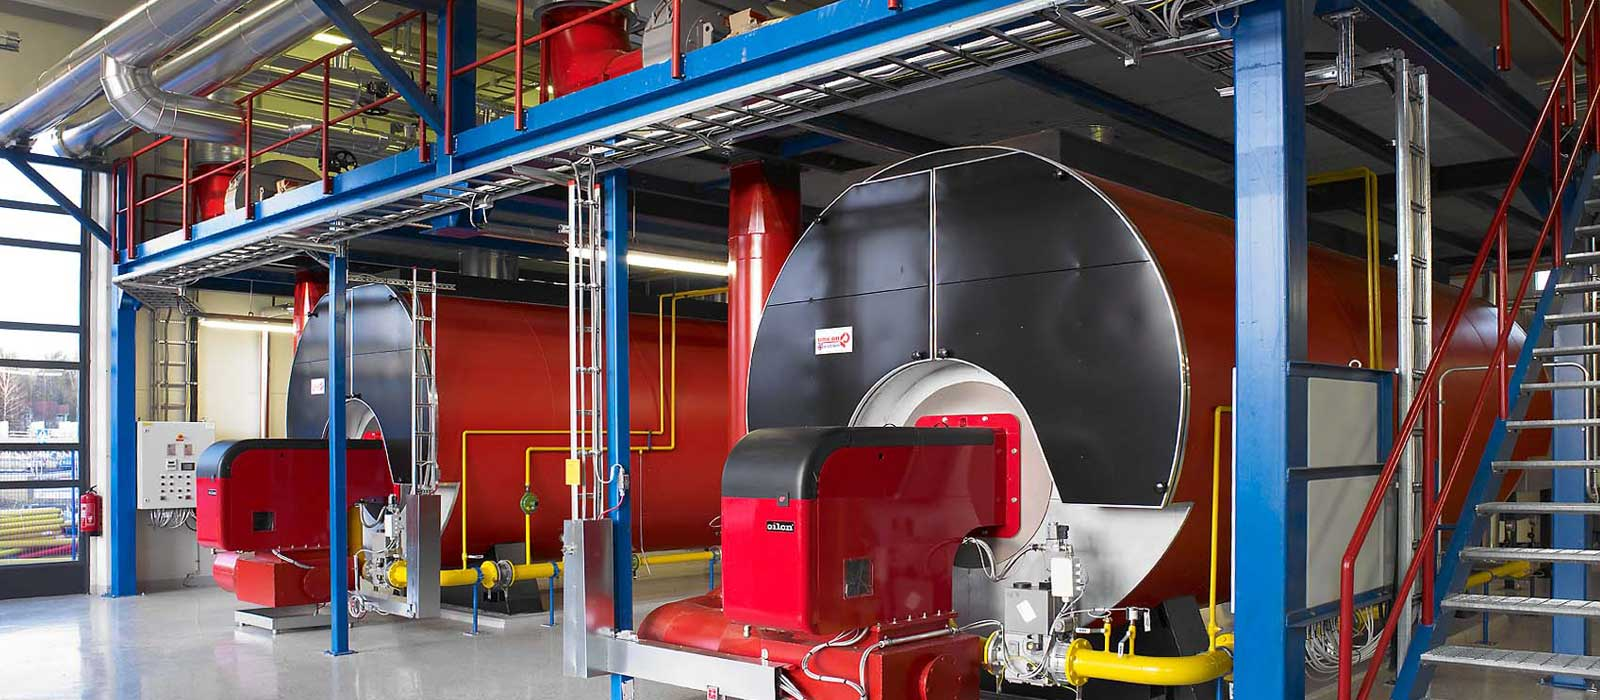 Commercial Boiler Room : HVAC installation & maintenance - North West England